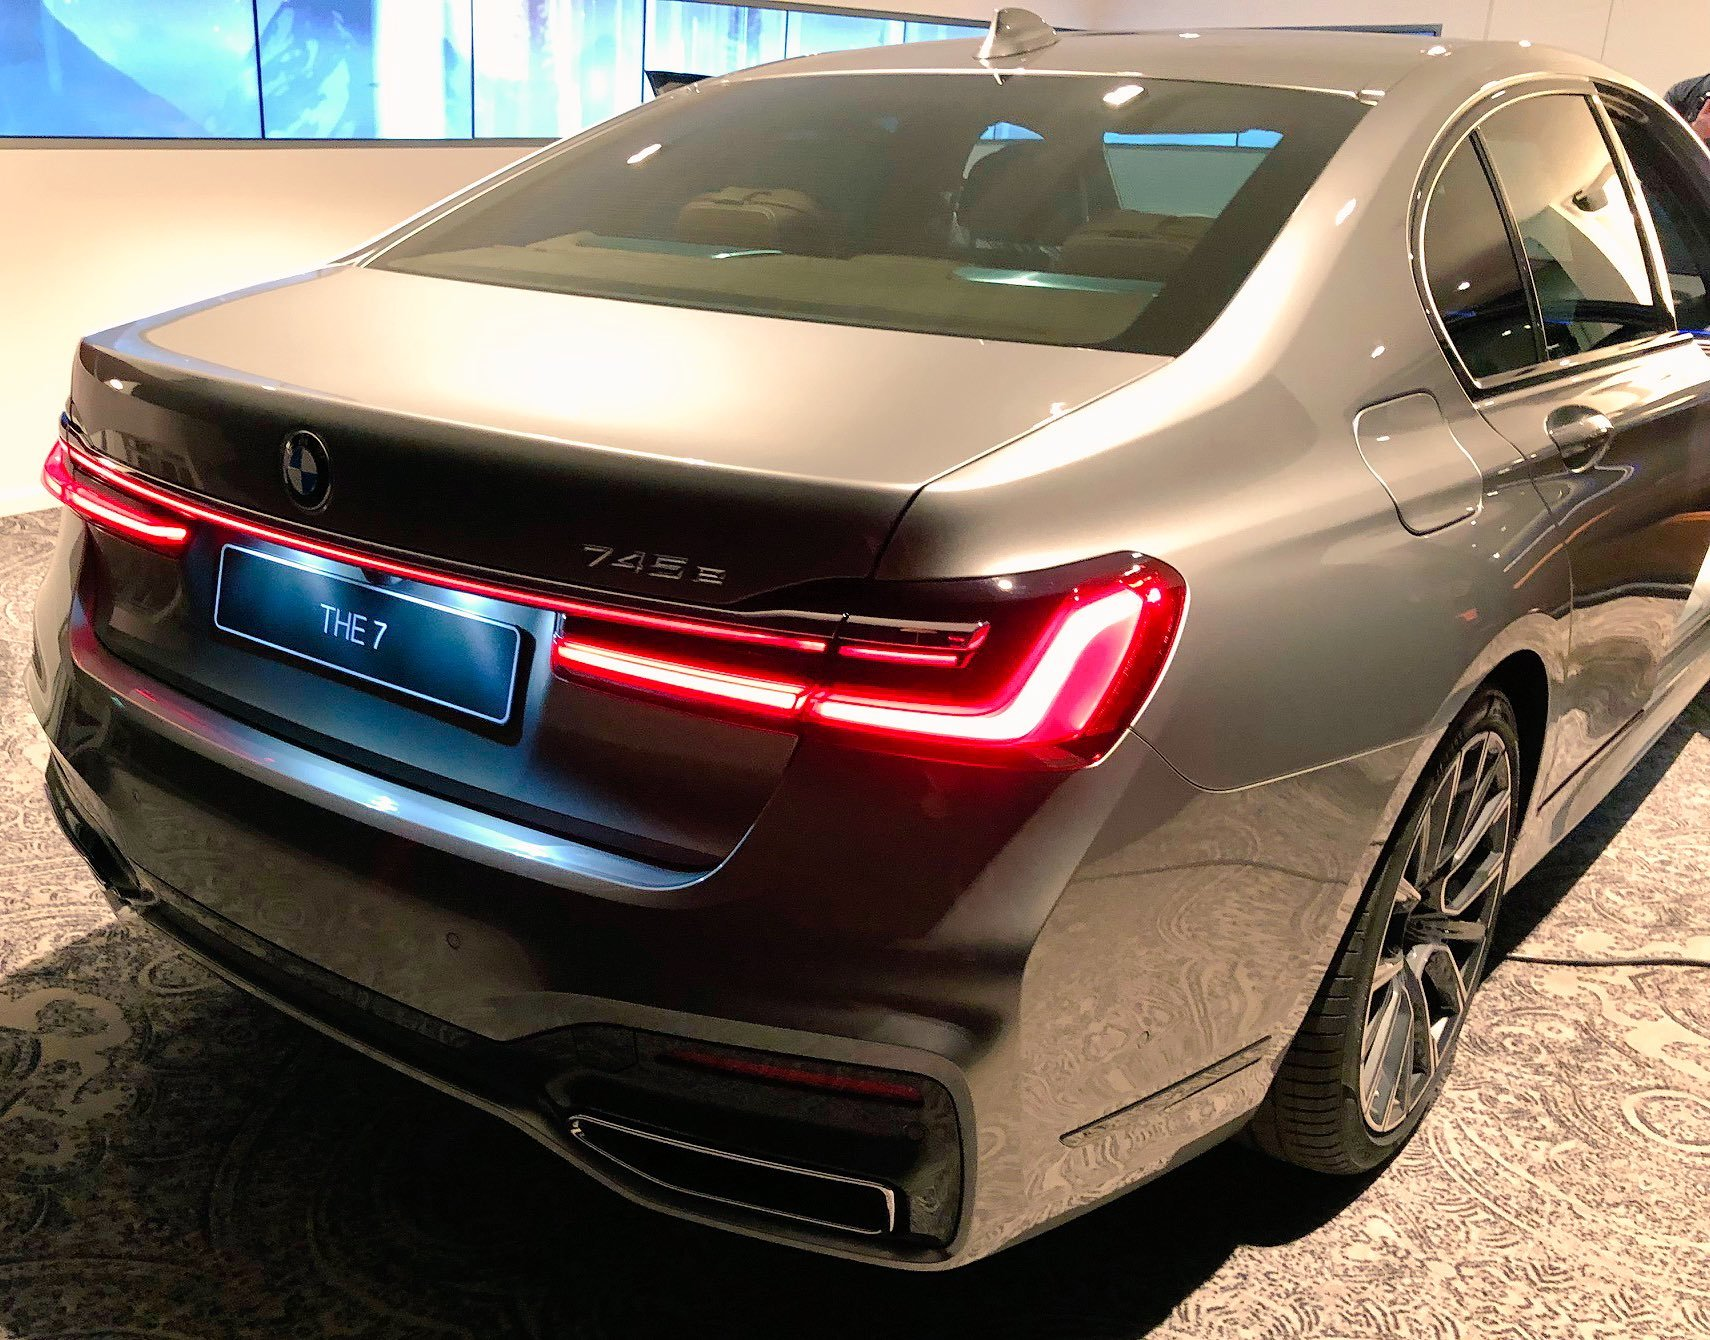 BMW 7 Series facelift 2019 leaked official images (8)